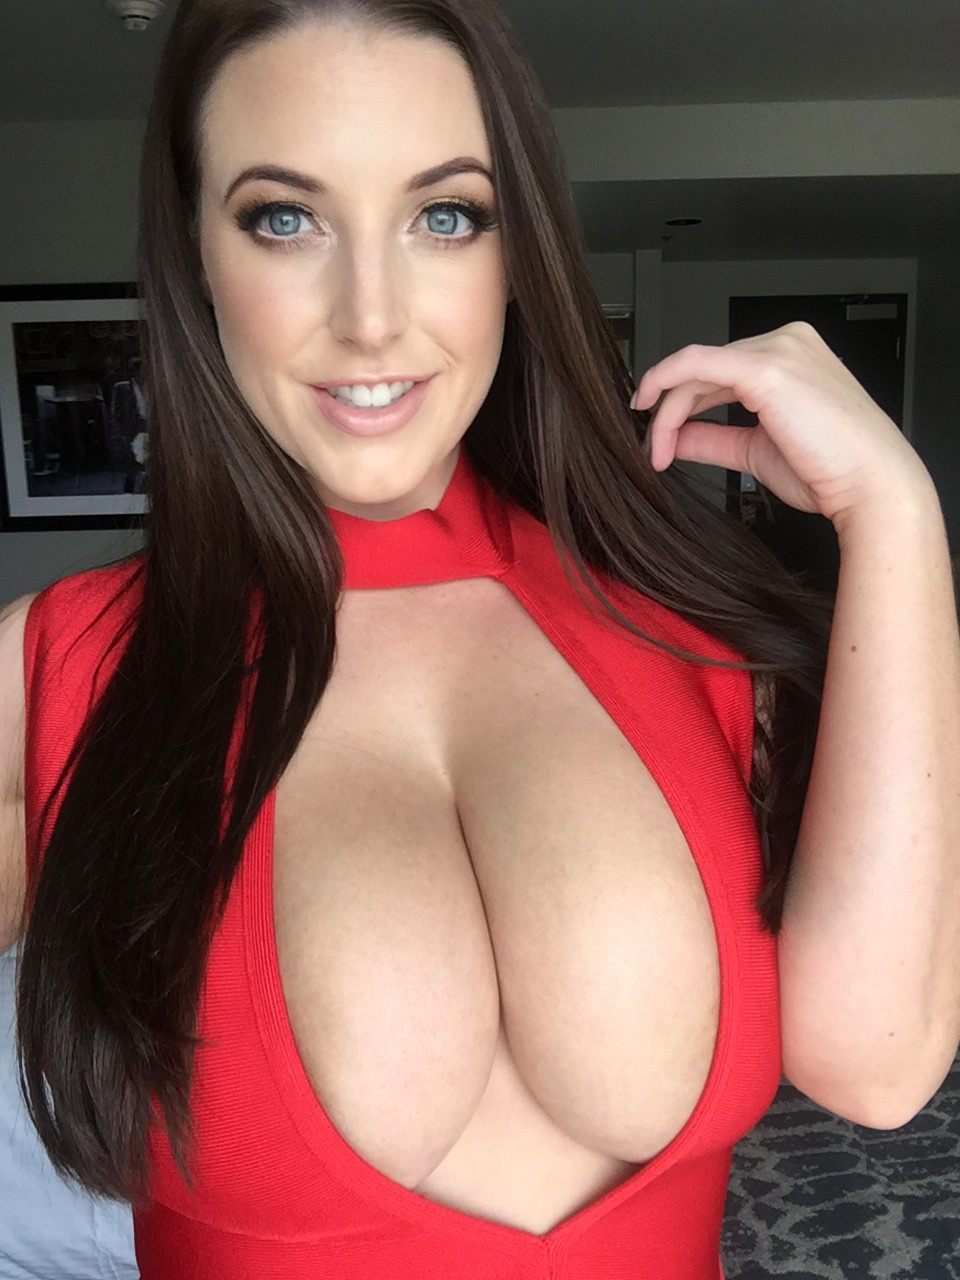 amateur girlfriend porno videos and free homemade girl